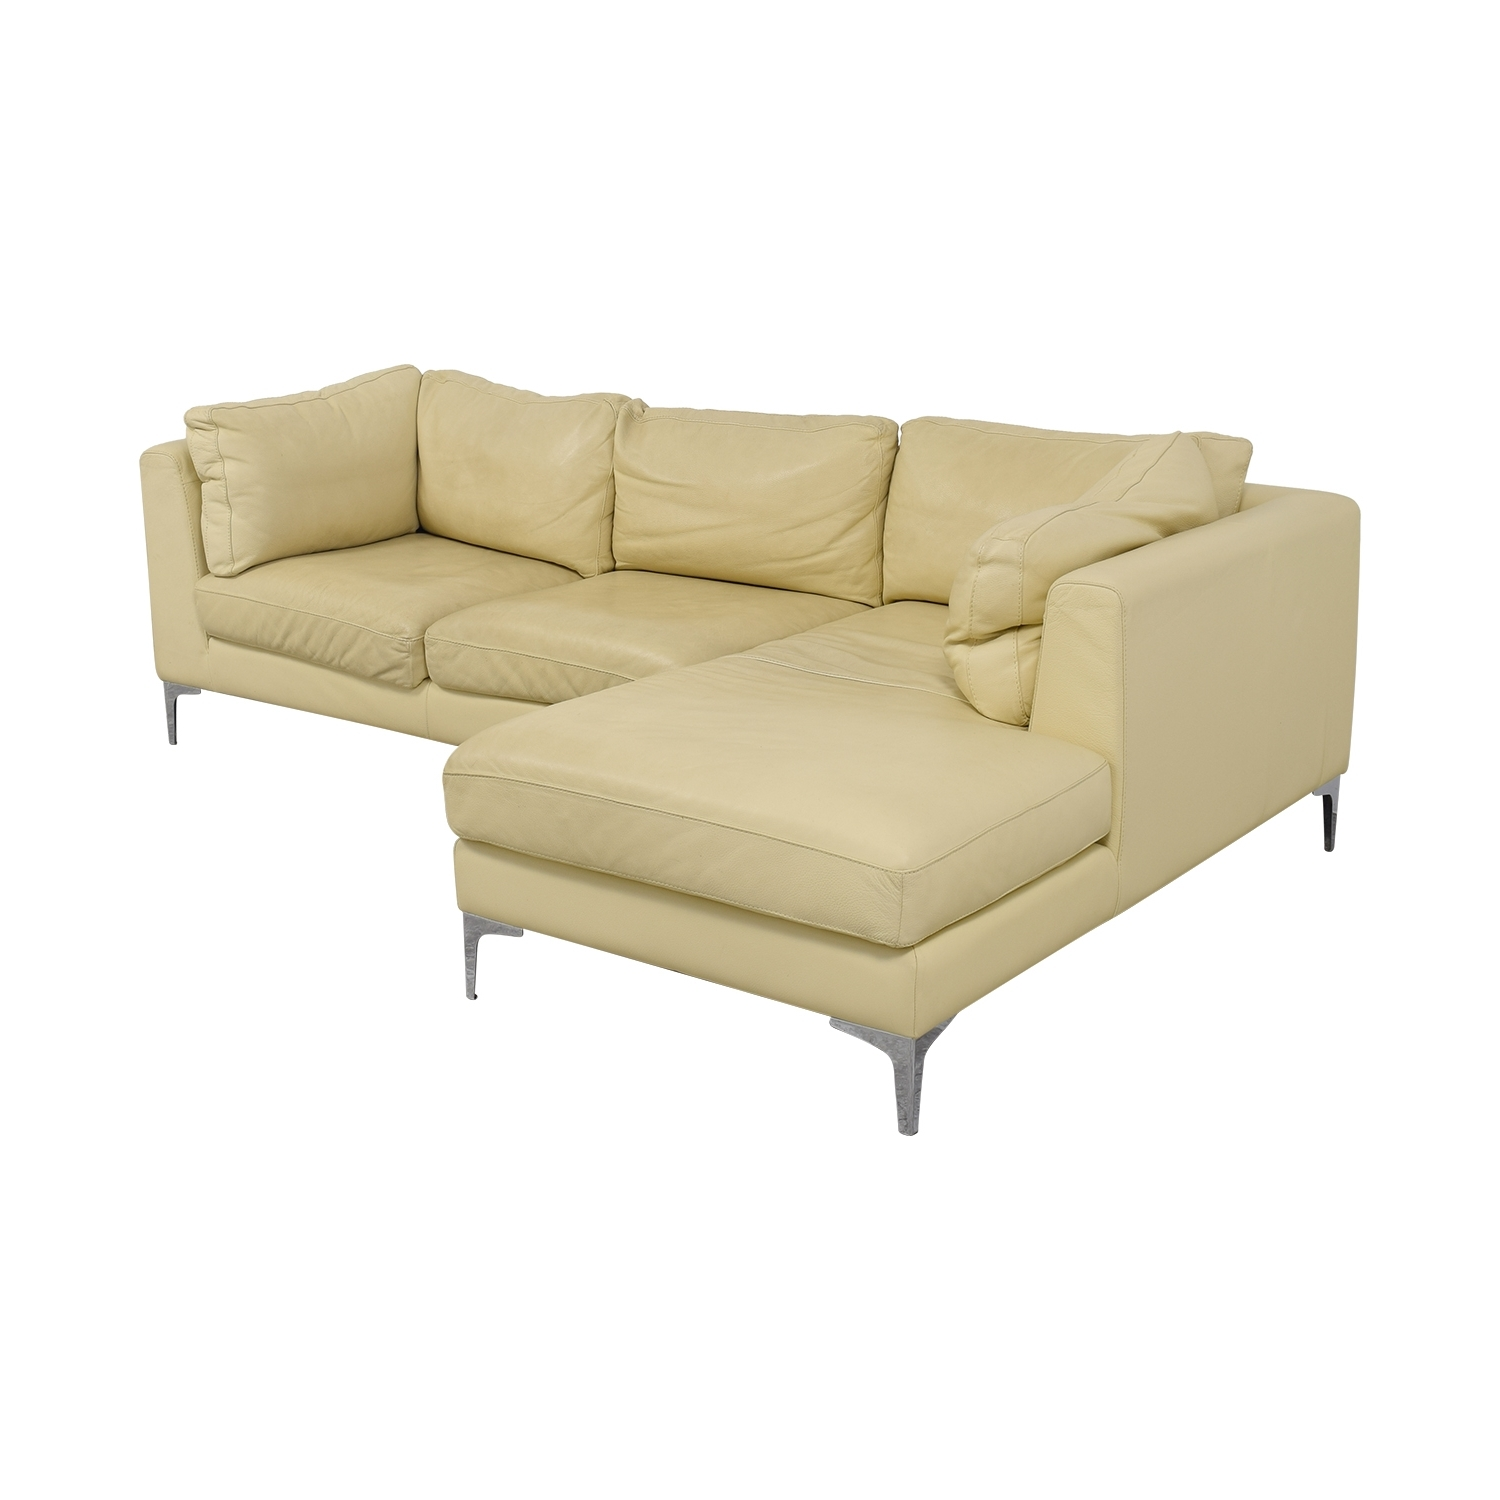 [%51% Off – Design Within Reach Design Within Reach Cream Leather Intended For Most Up To Date Cream Chaise Sofas|Cream Chaise Sofas Regarding Well Liked 51% Off – Design Within Reach Design Within Reach Cream Leather|Current Cream Chaise Sofas Throughout 51% Off – Design Within Reach Design Within Reach Cream Leather|Most Up To Date 51% Off – Design Within Reach Design Within Reach Cream Leather Inside Cream Chaise Sofas%] (View 1 of 15)